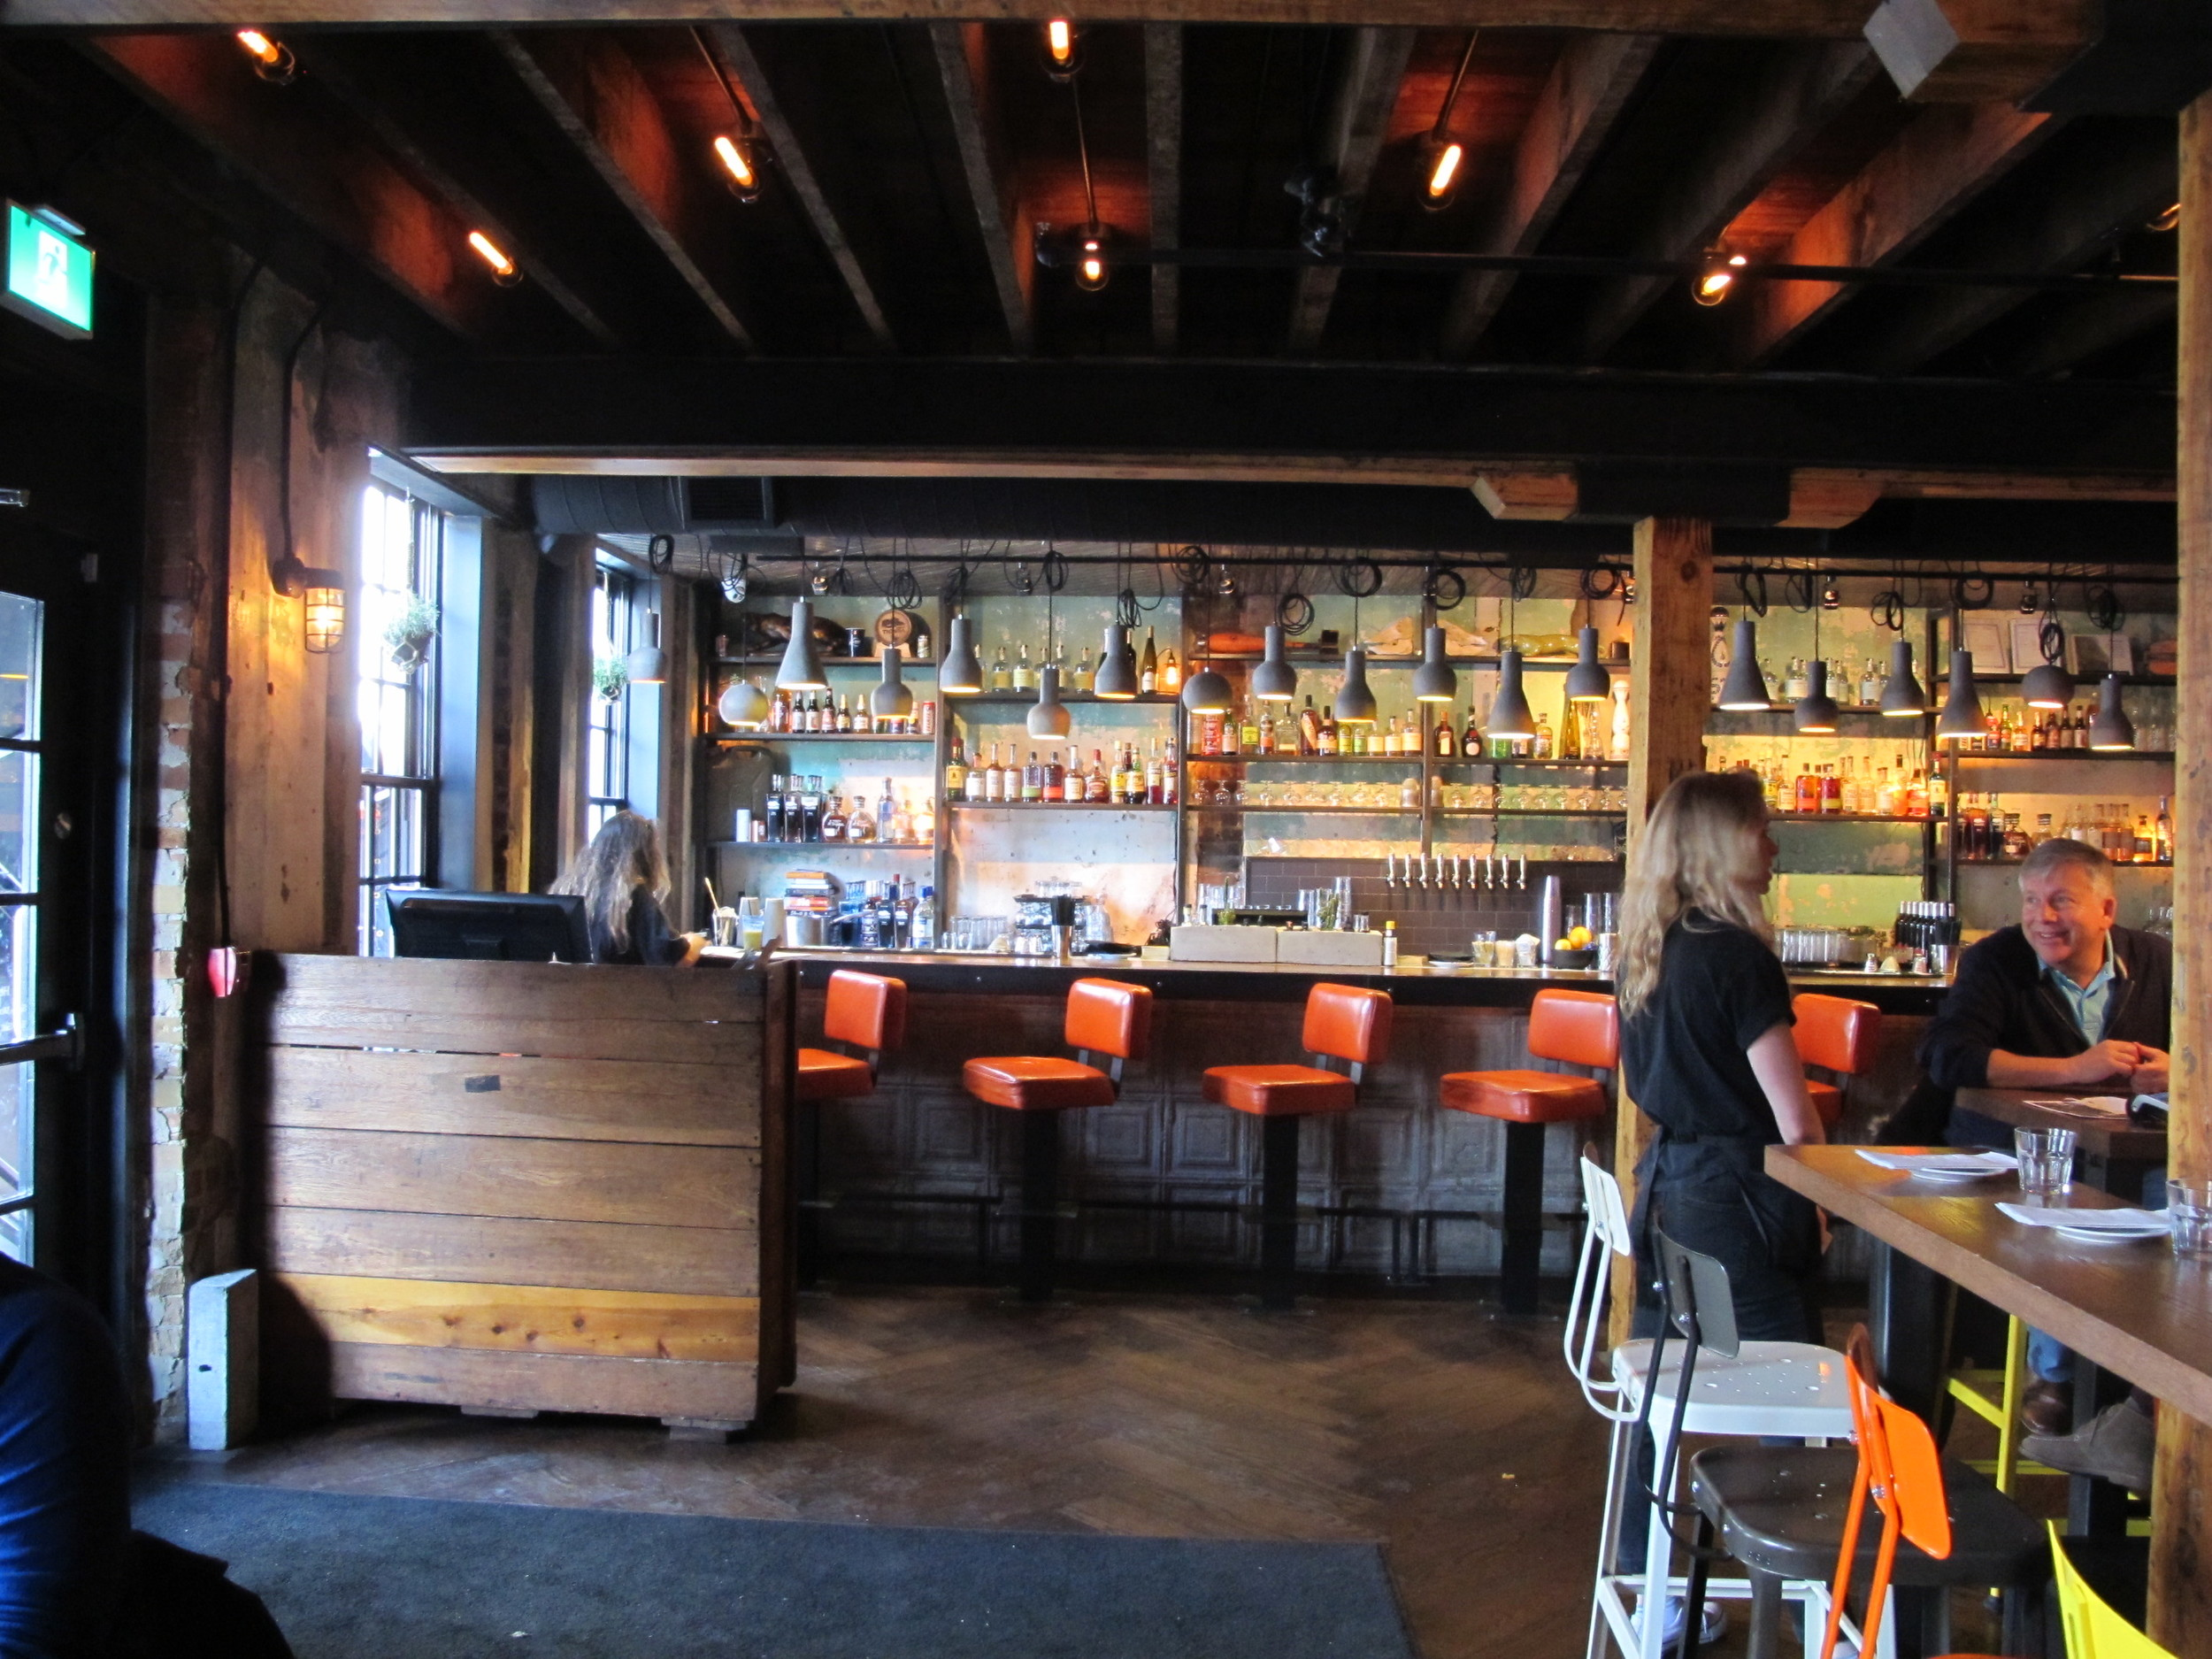 Picture of the main floor dining area. Orange bar height stools featured